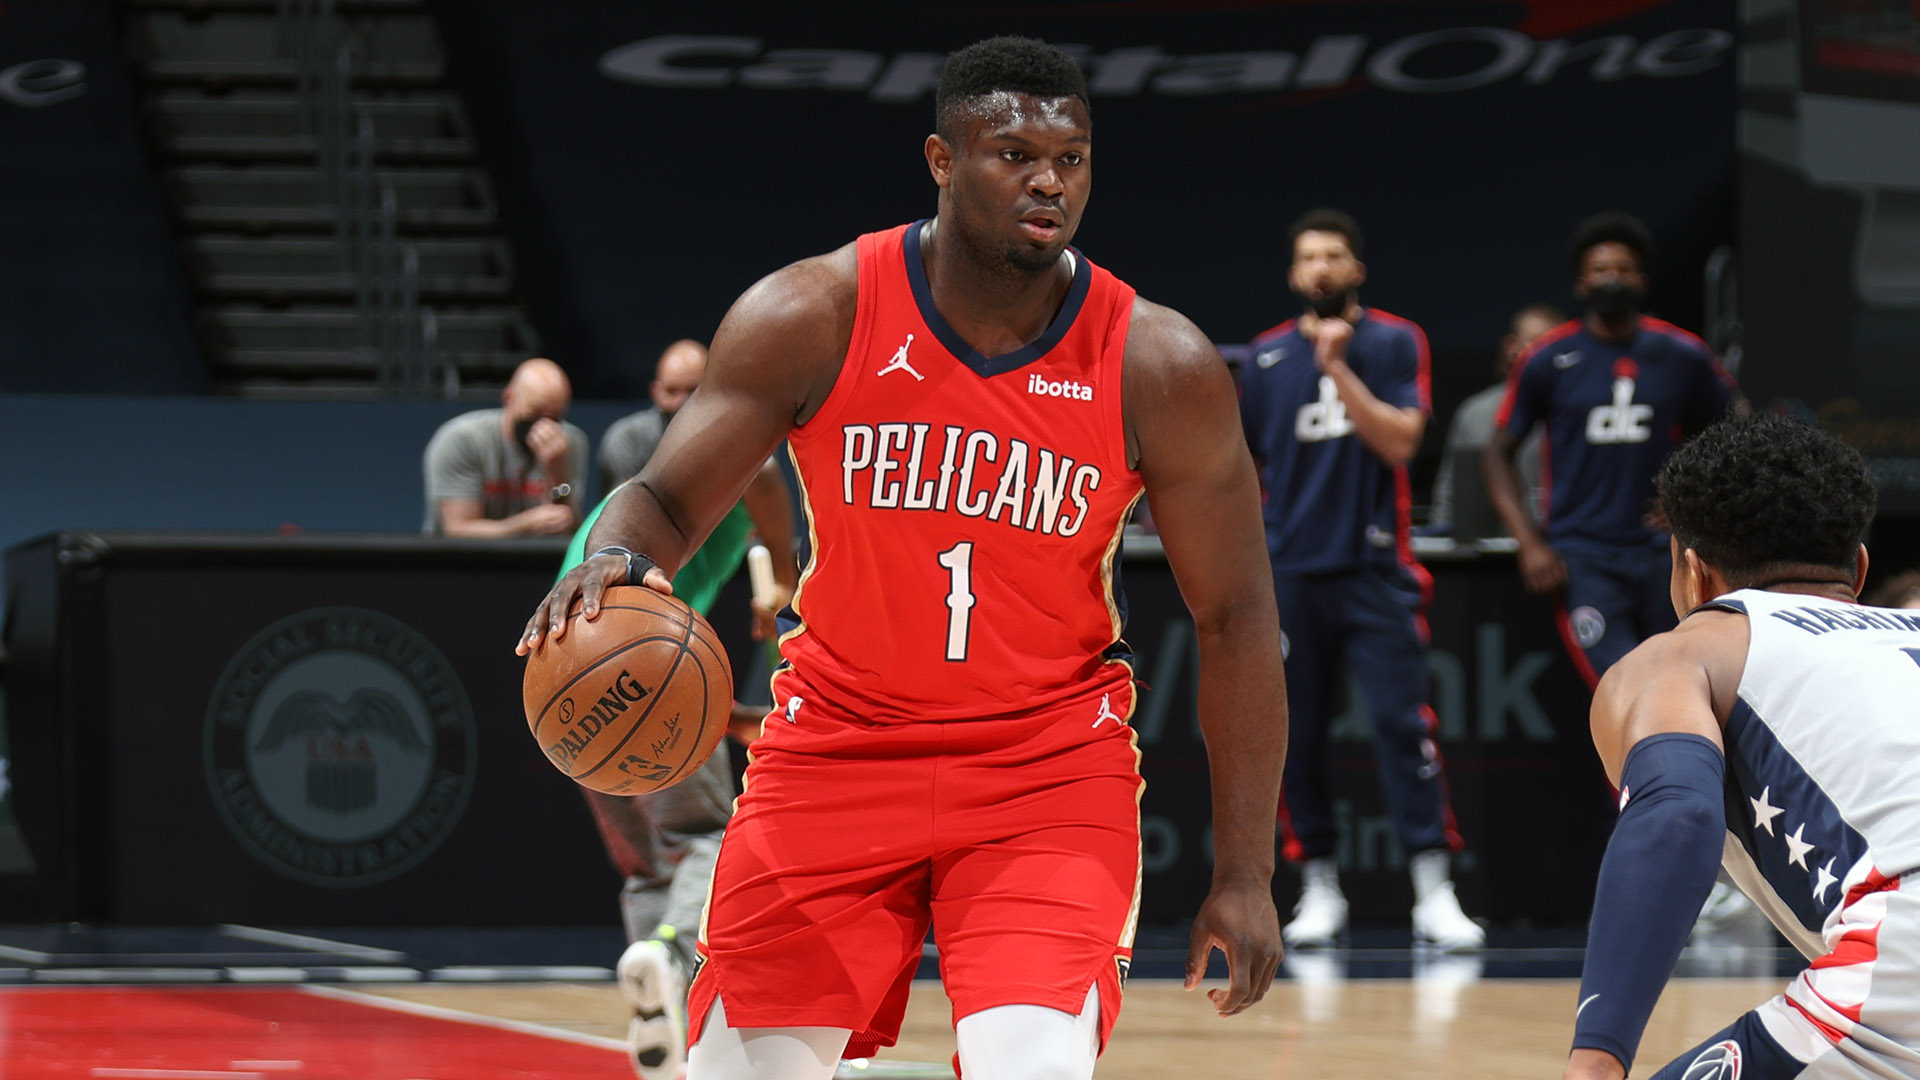 10 key questions: How can Zion Williamson take his game to next level?